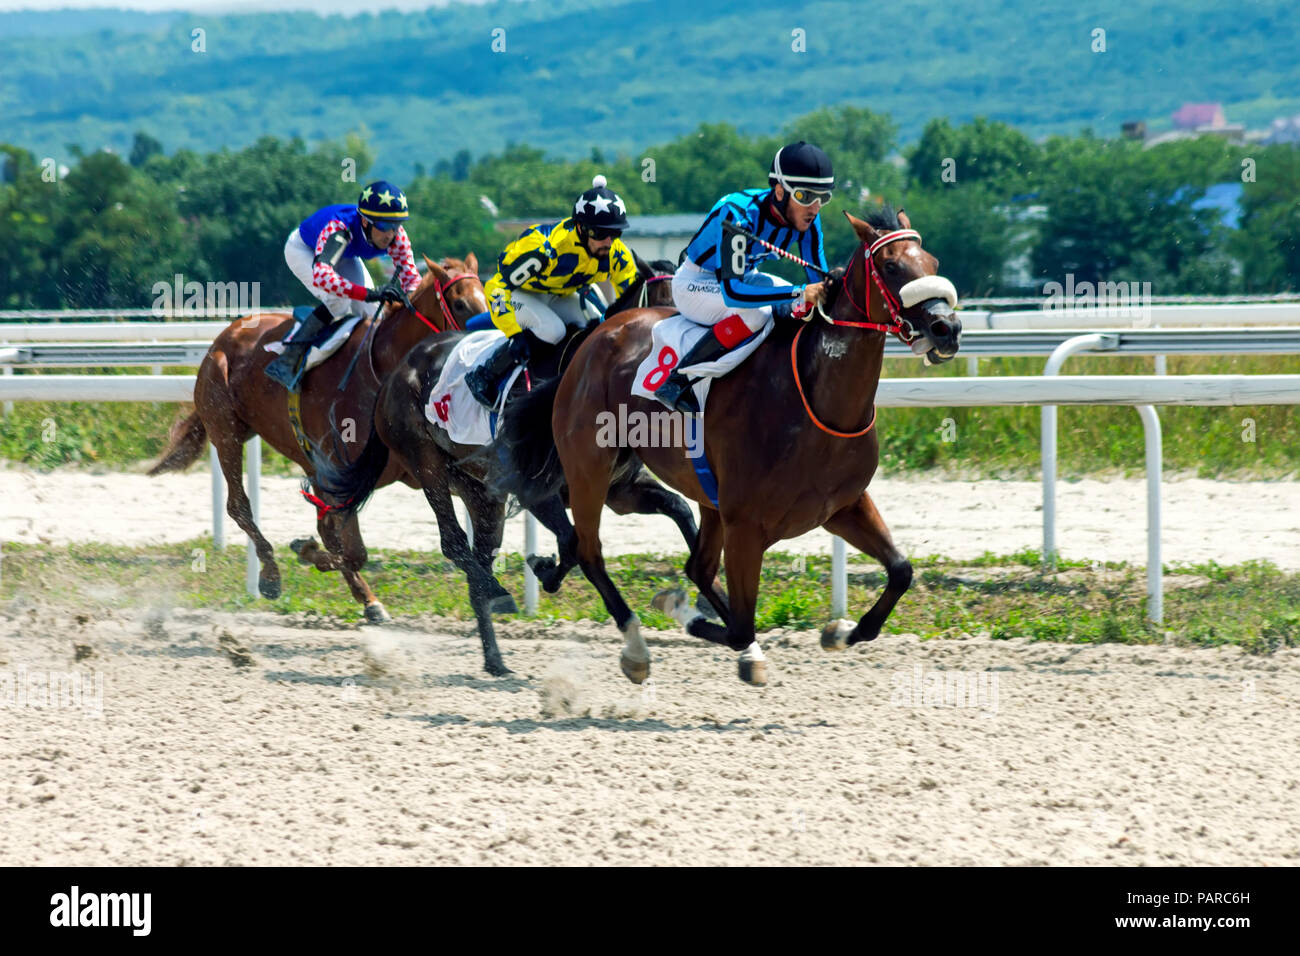 PYATIGORSK, RUSSIA - JULY 22, 2018:Horse racing for the prize of the Kondratova in Pyatigorsk,one of the largest and oldest racecourses in Russia. Stock Photo